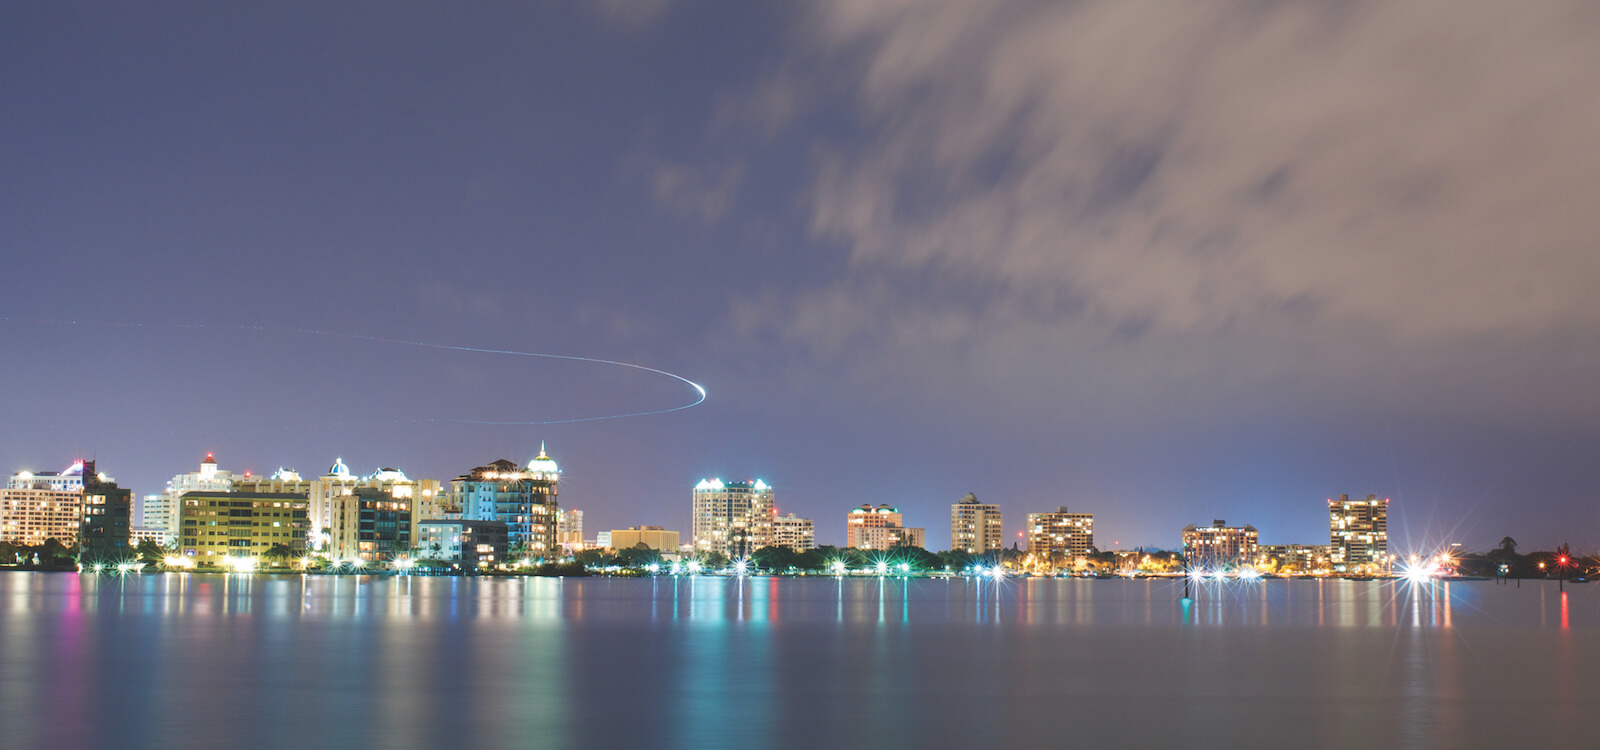 MustDo.com | Downtown Sarasota skyline. Must Do Visitor Guides offers the top 10 bars and nightlife hot spots to visit while on vacation in Sarasota, Florida.